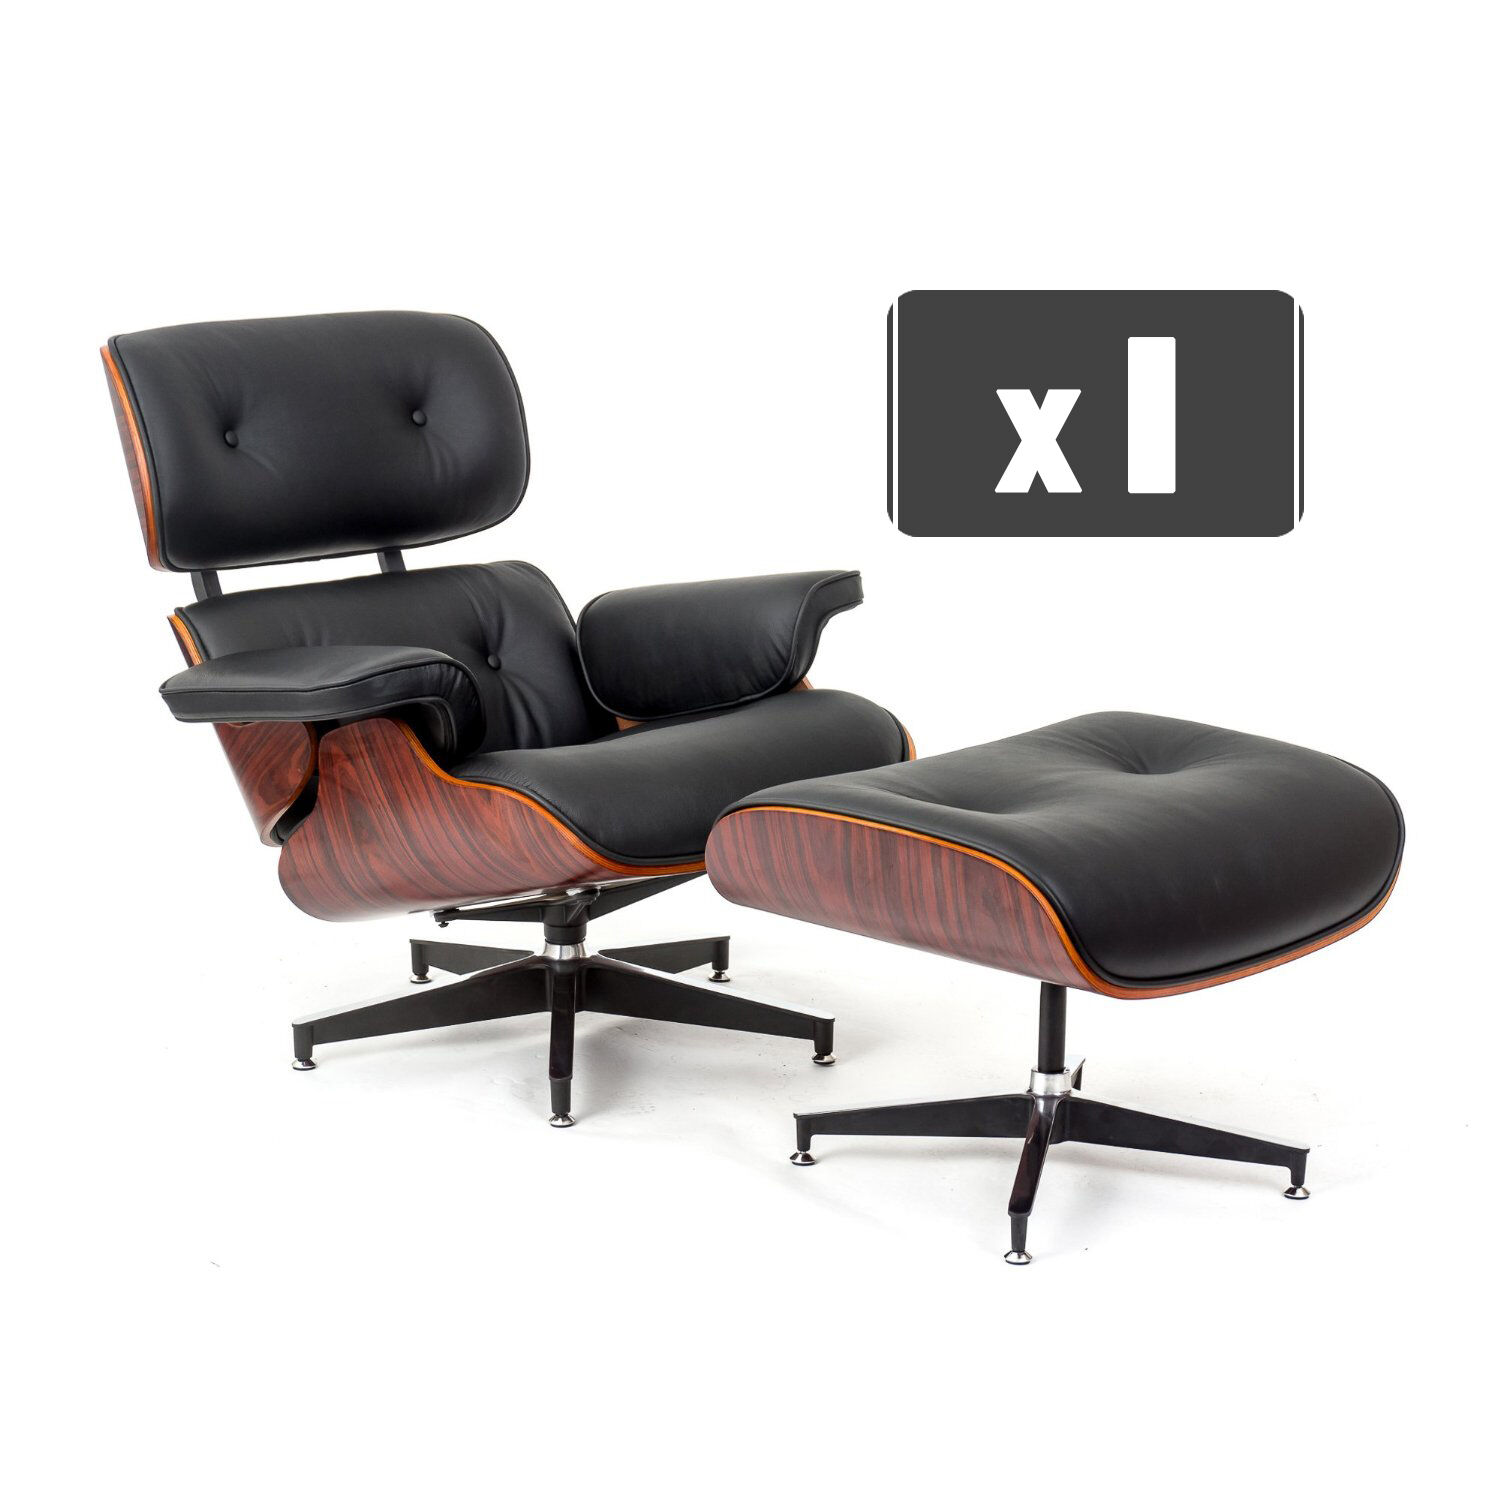 Replica charles eames lounge chair ottoman in black for Eames chair replica deutschland